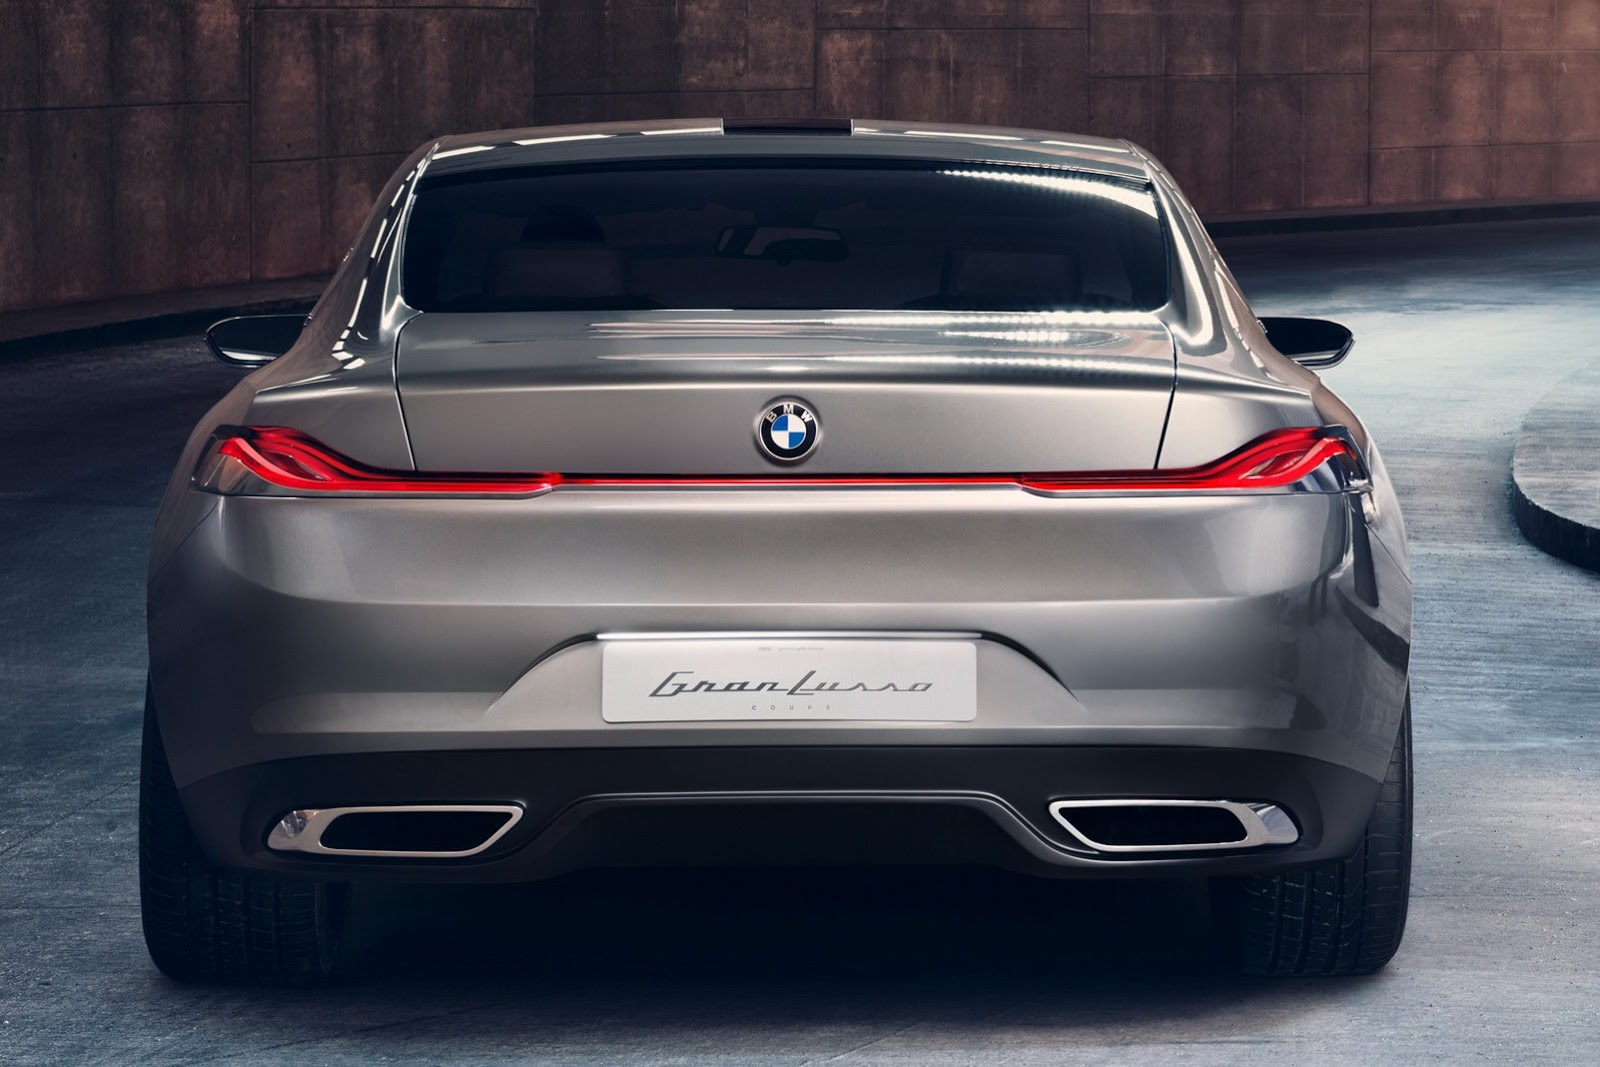 bmw 8 series will allegedly arrive by 2020 replace the 6 series carscoops. Black Bedroom Furniture Sets. Home Design Ideas